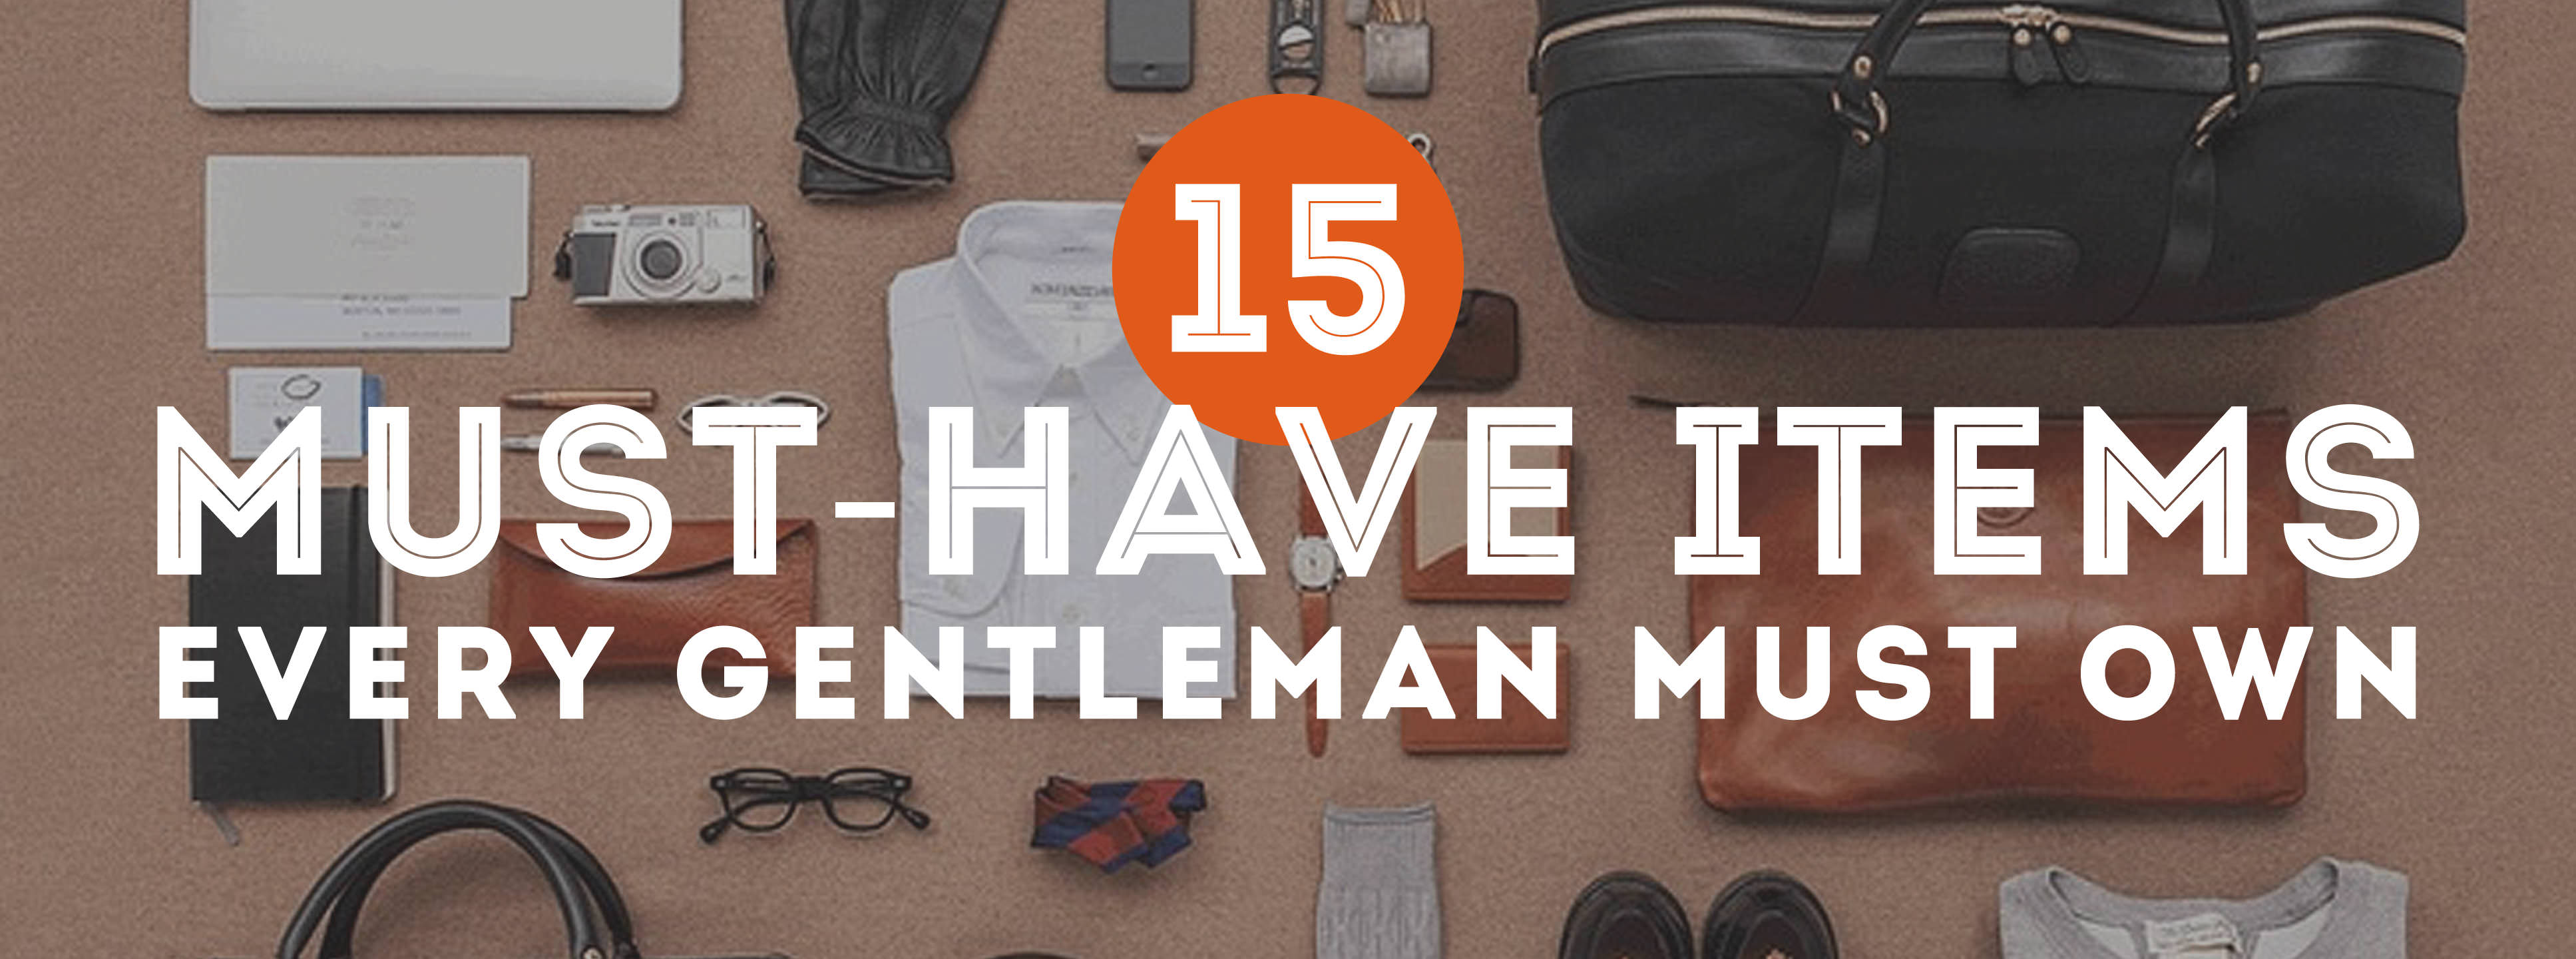 15 Must-Have Items Every Gentleman Should Own